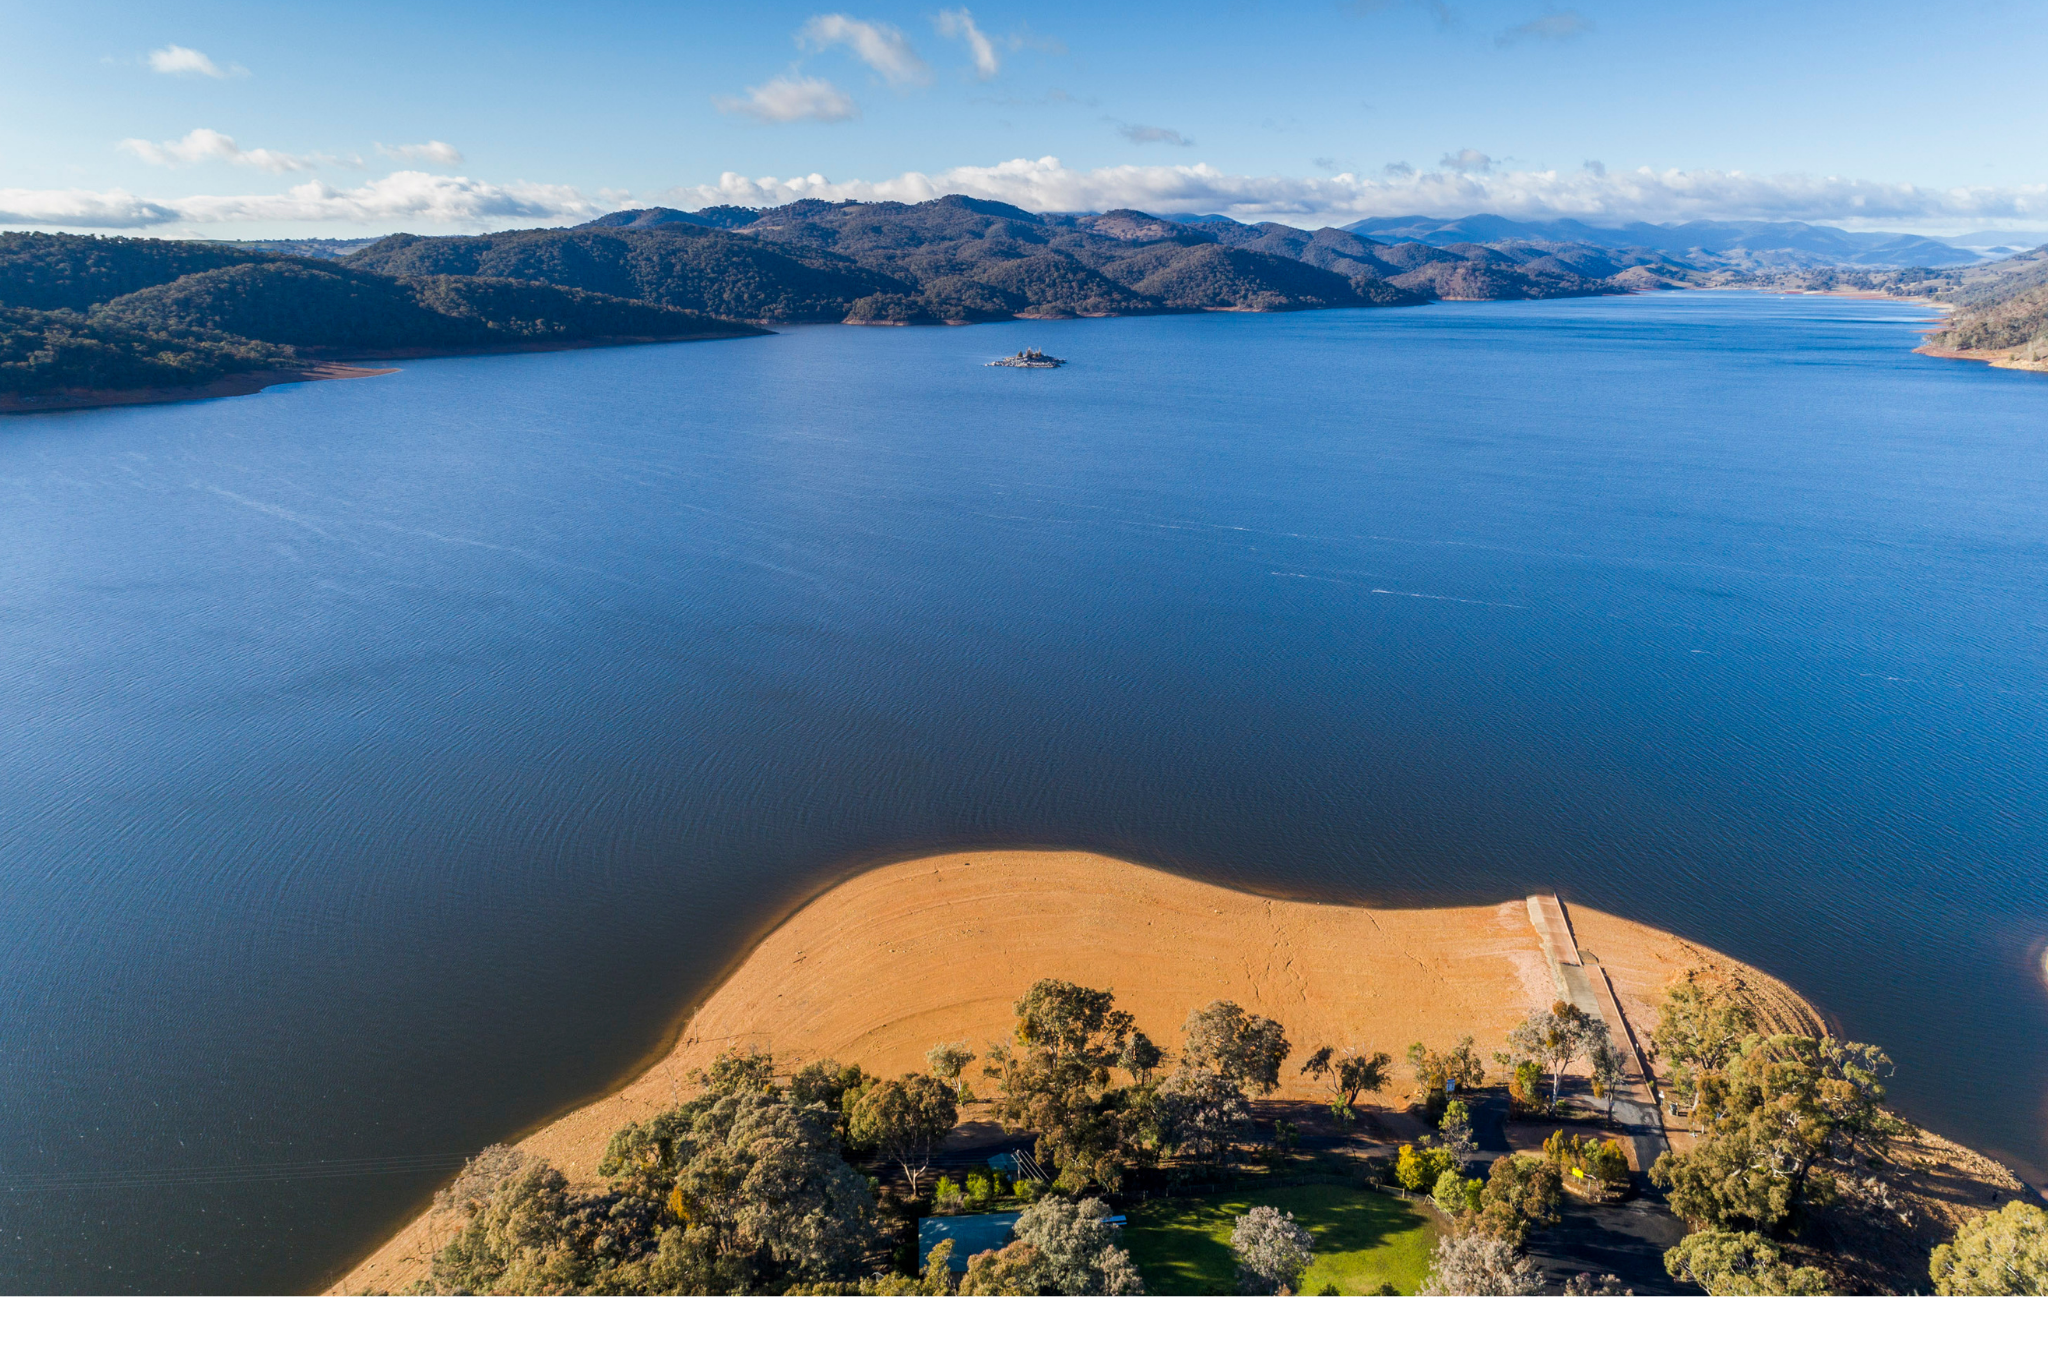 An aerial view of Burrinjuck Dam in NSW